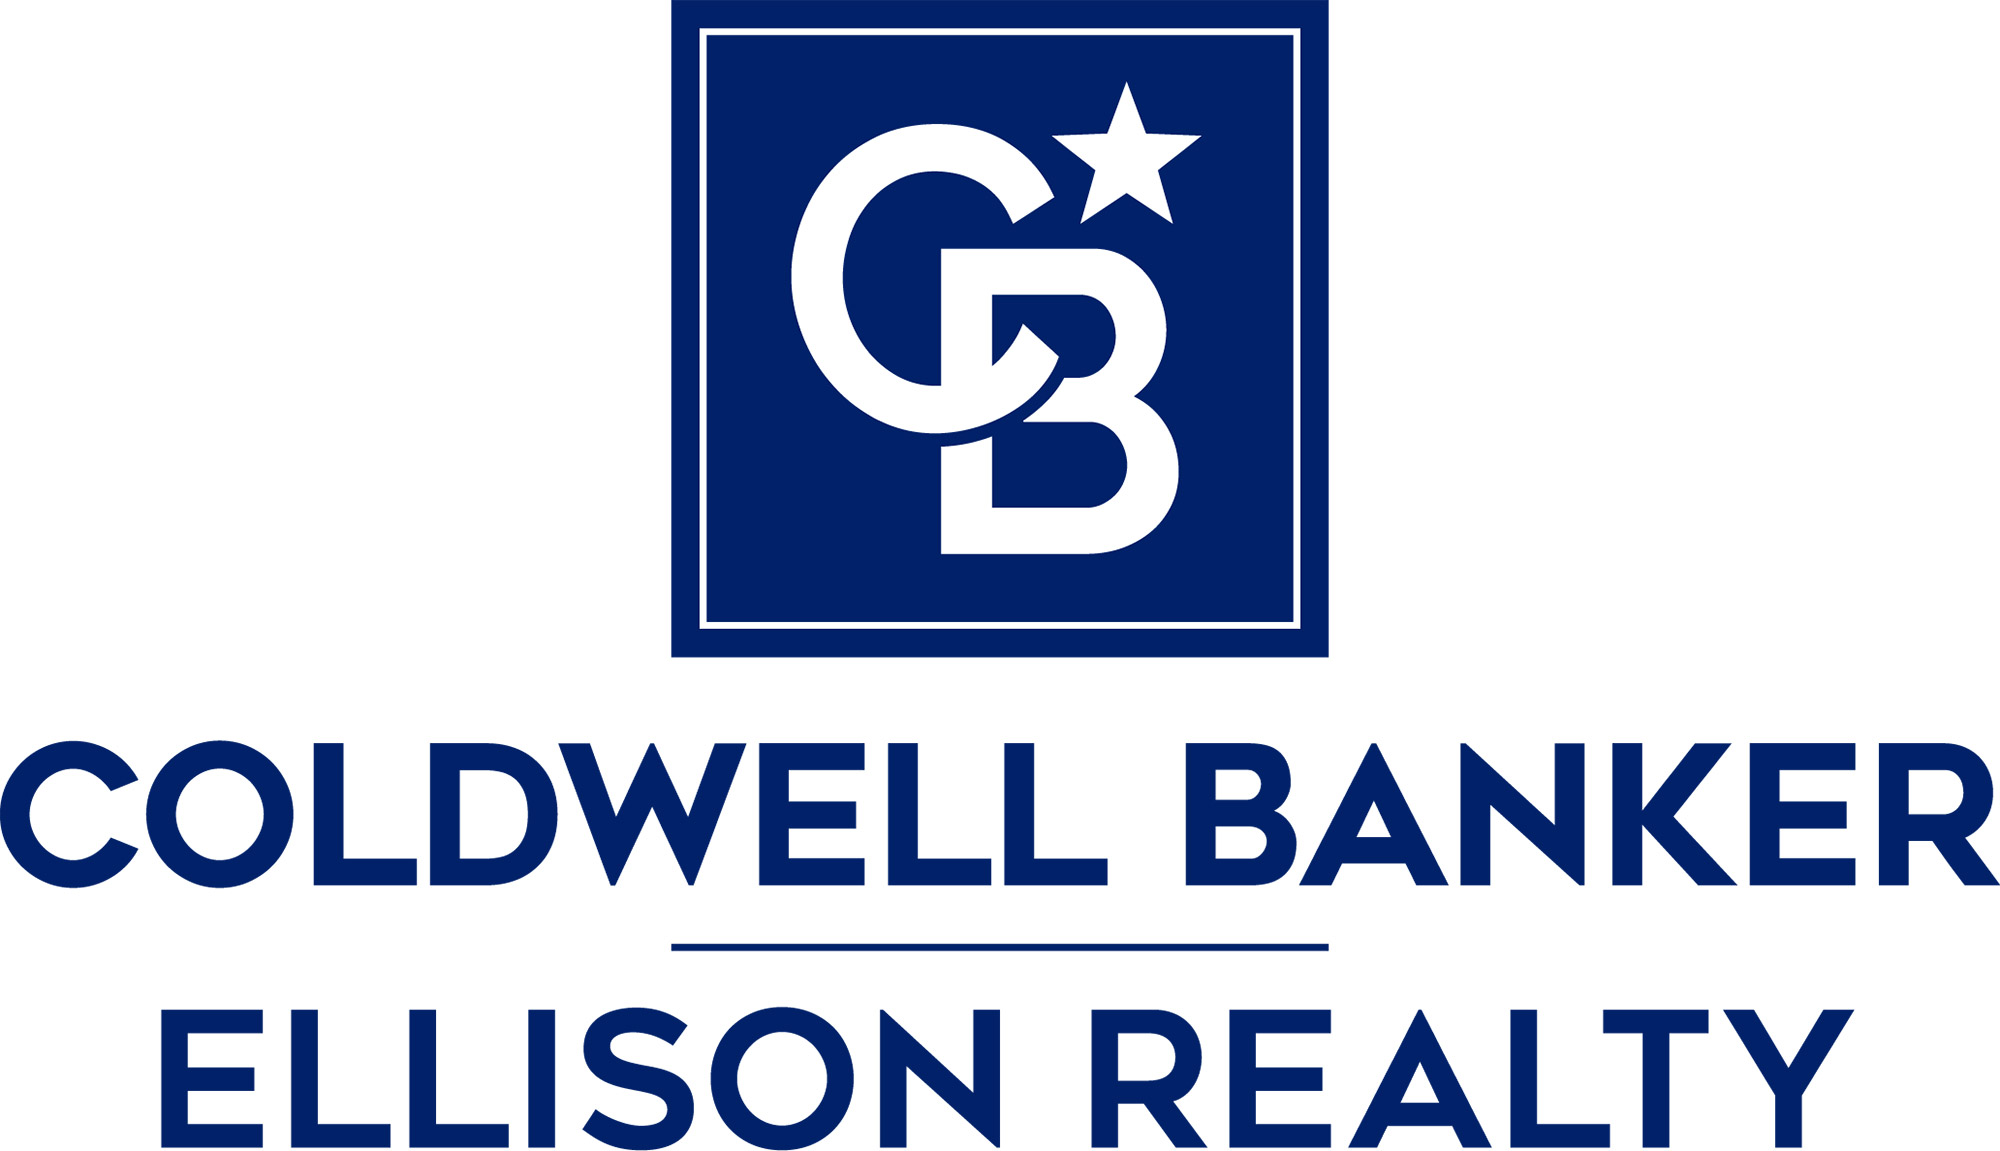 Tom Bartlett - Coldwell Banker Ellison Realty